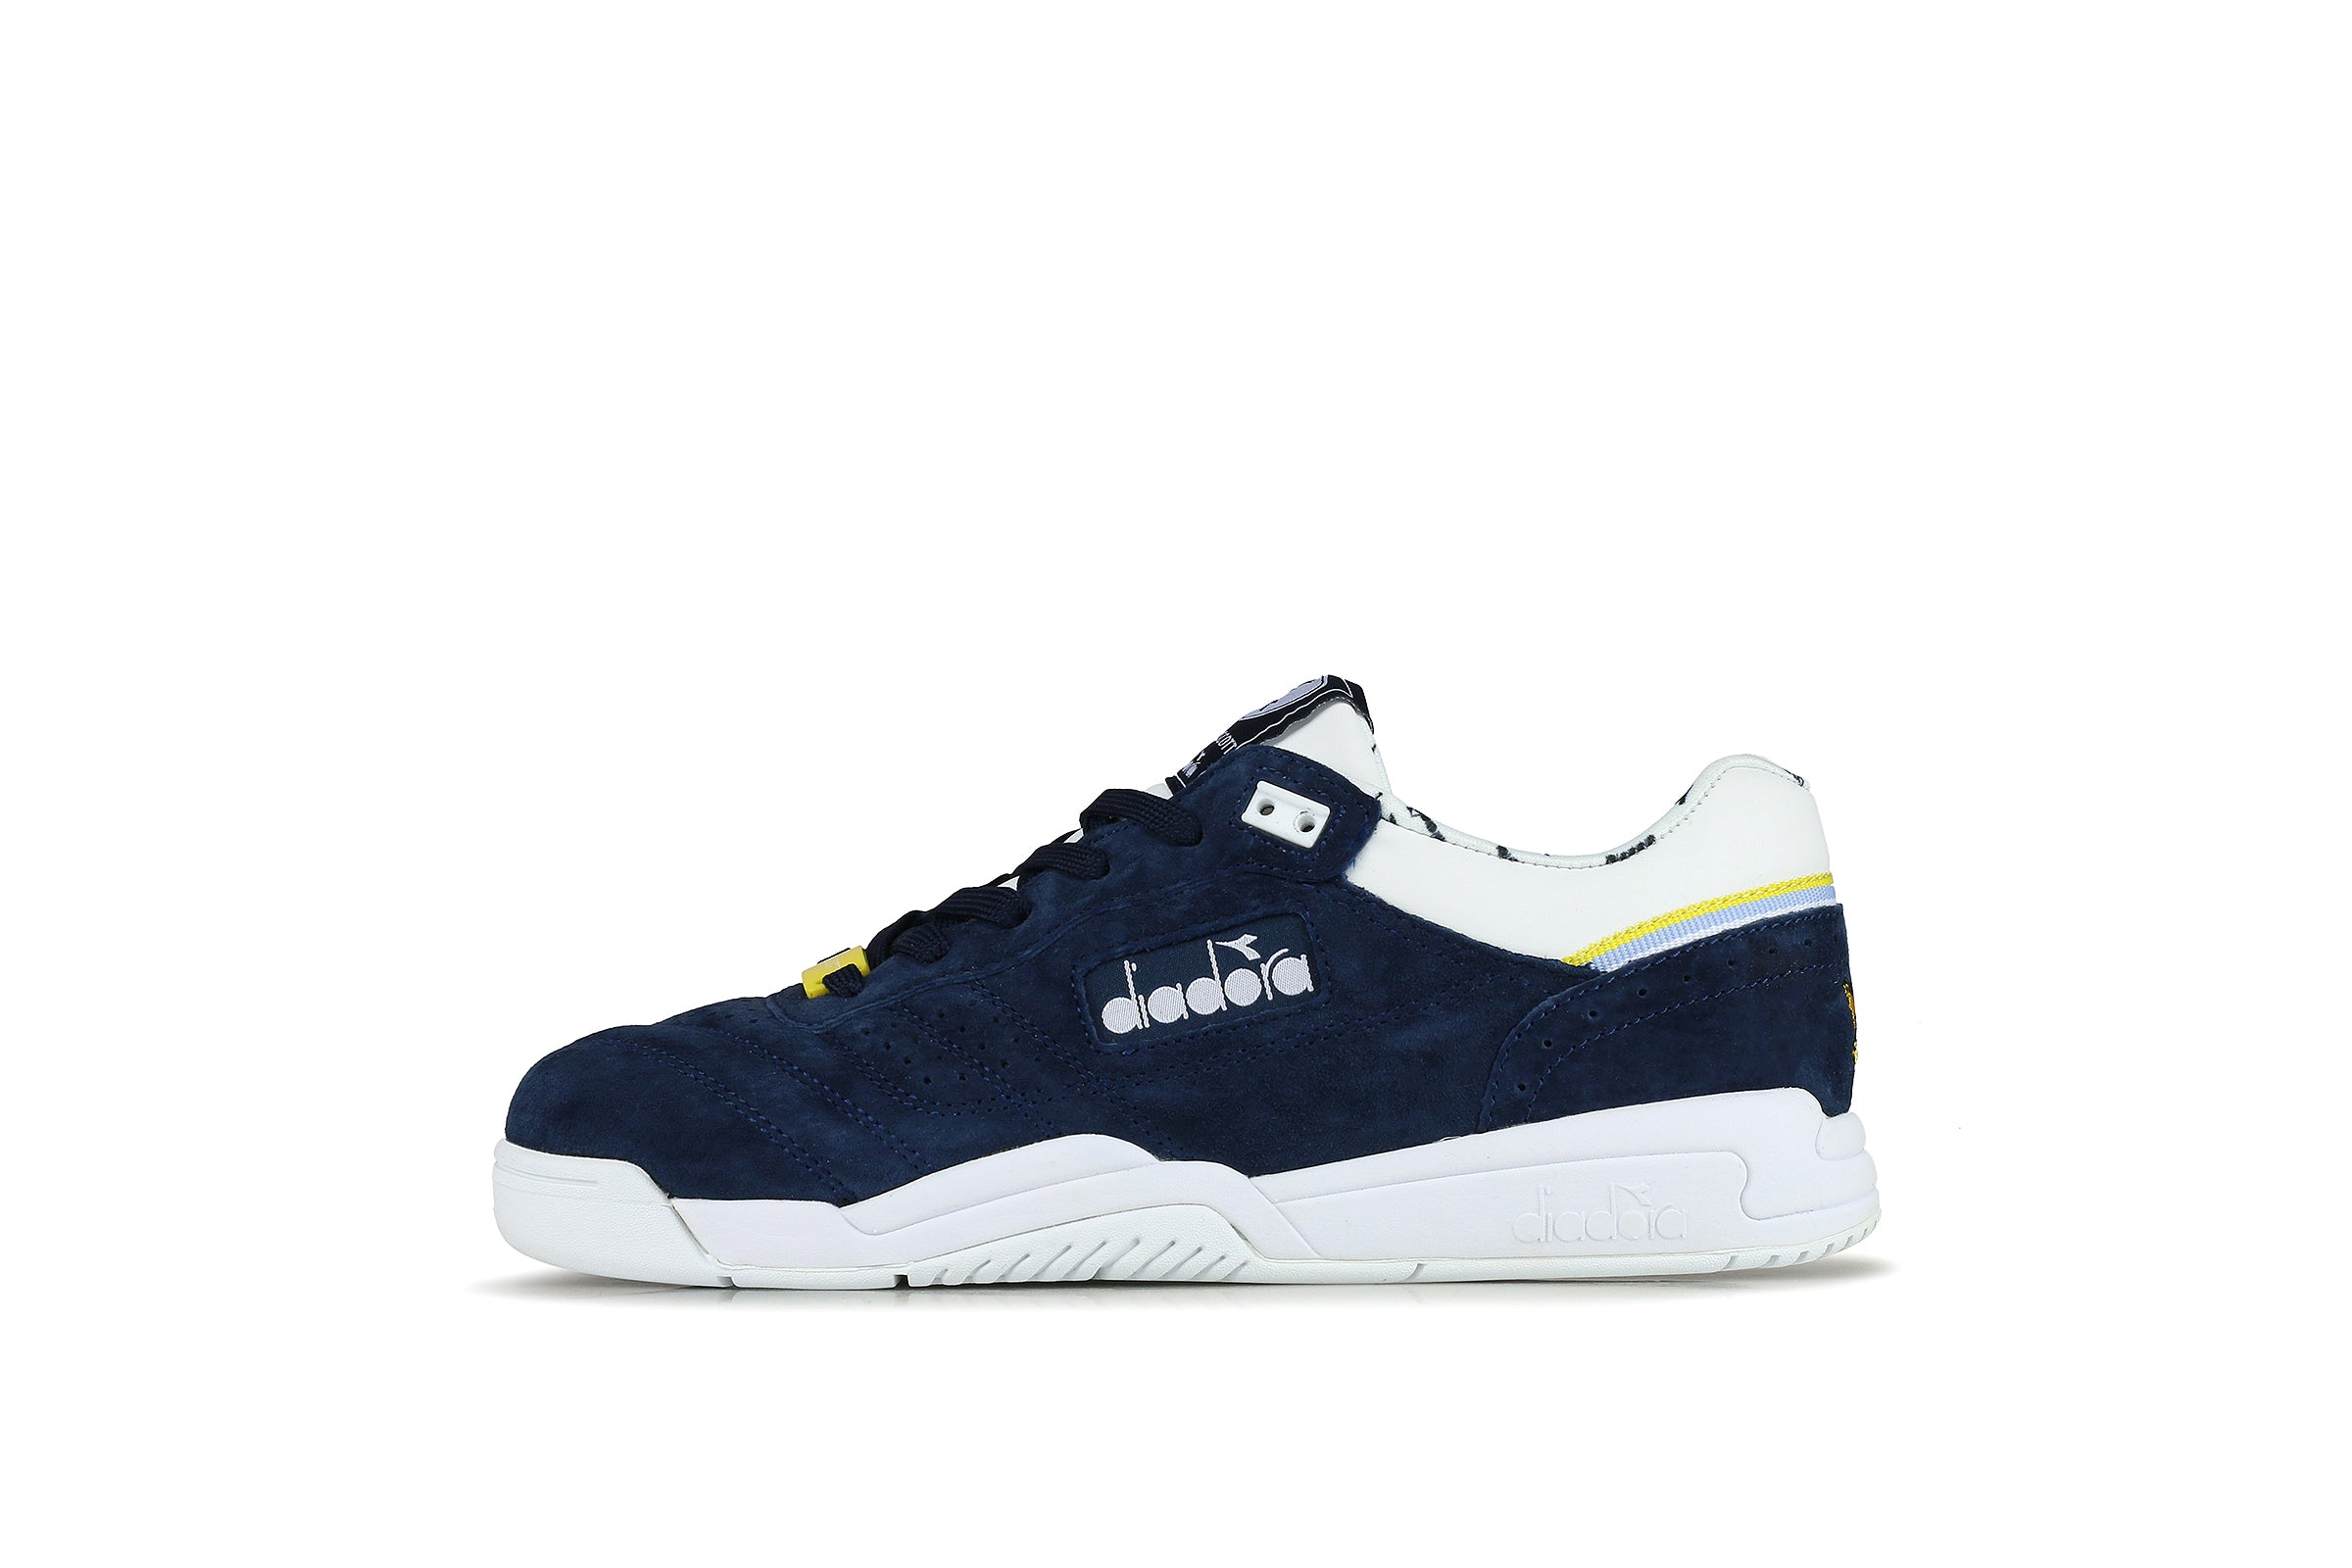 Diadora Action x Lyle & Scott